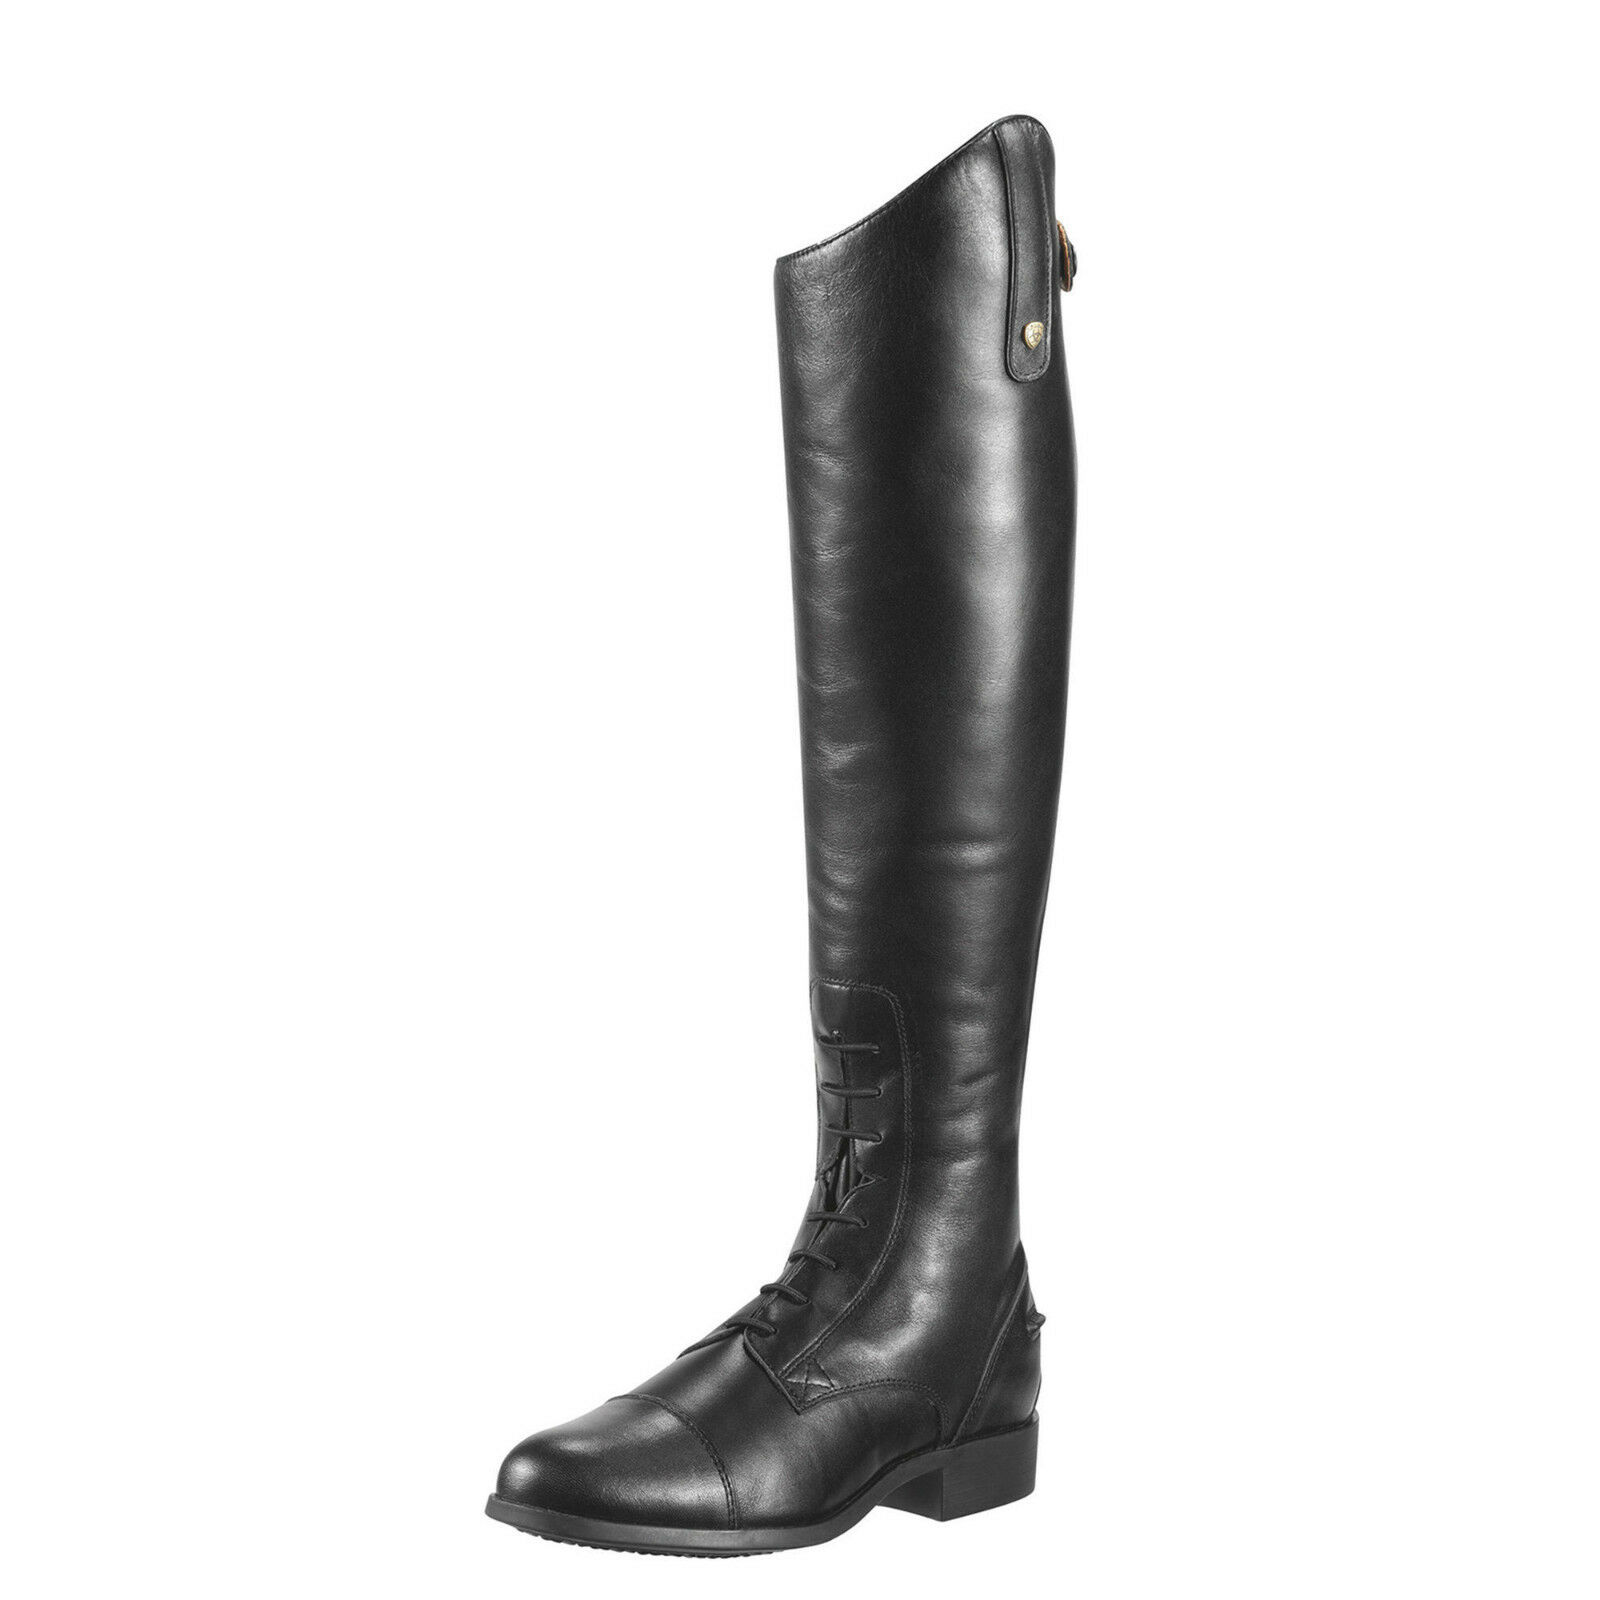 Ariat Heritage Contour Field Zip Tall Riding Boots Ladies M  Da65